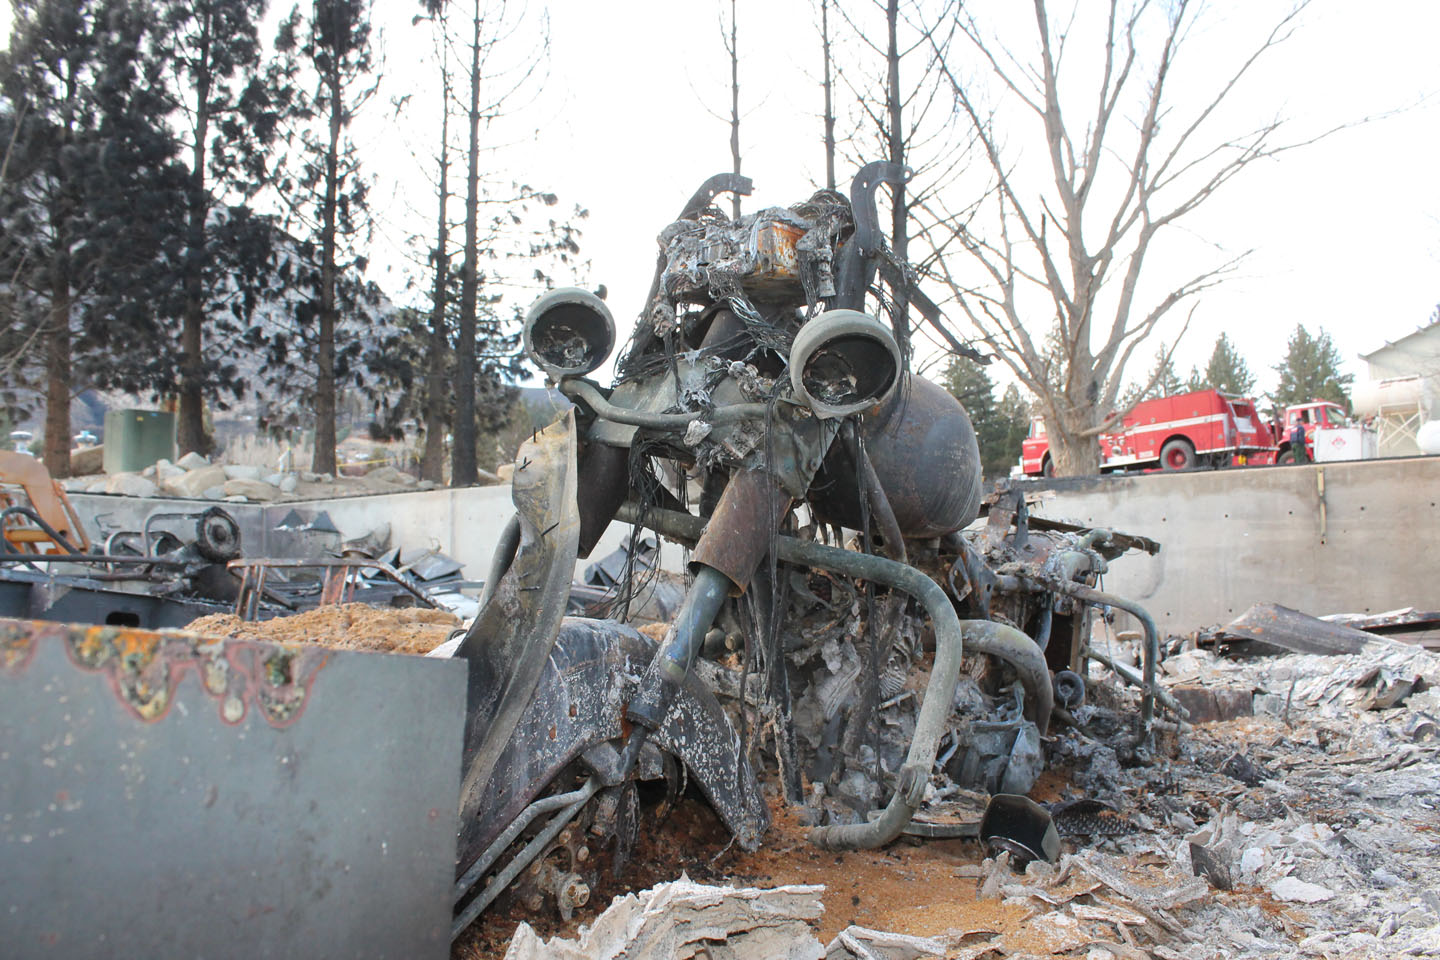 Retired CHP supervisor Al's burned out motorcycle.